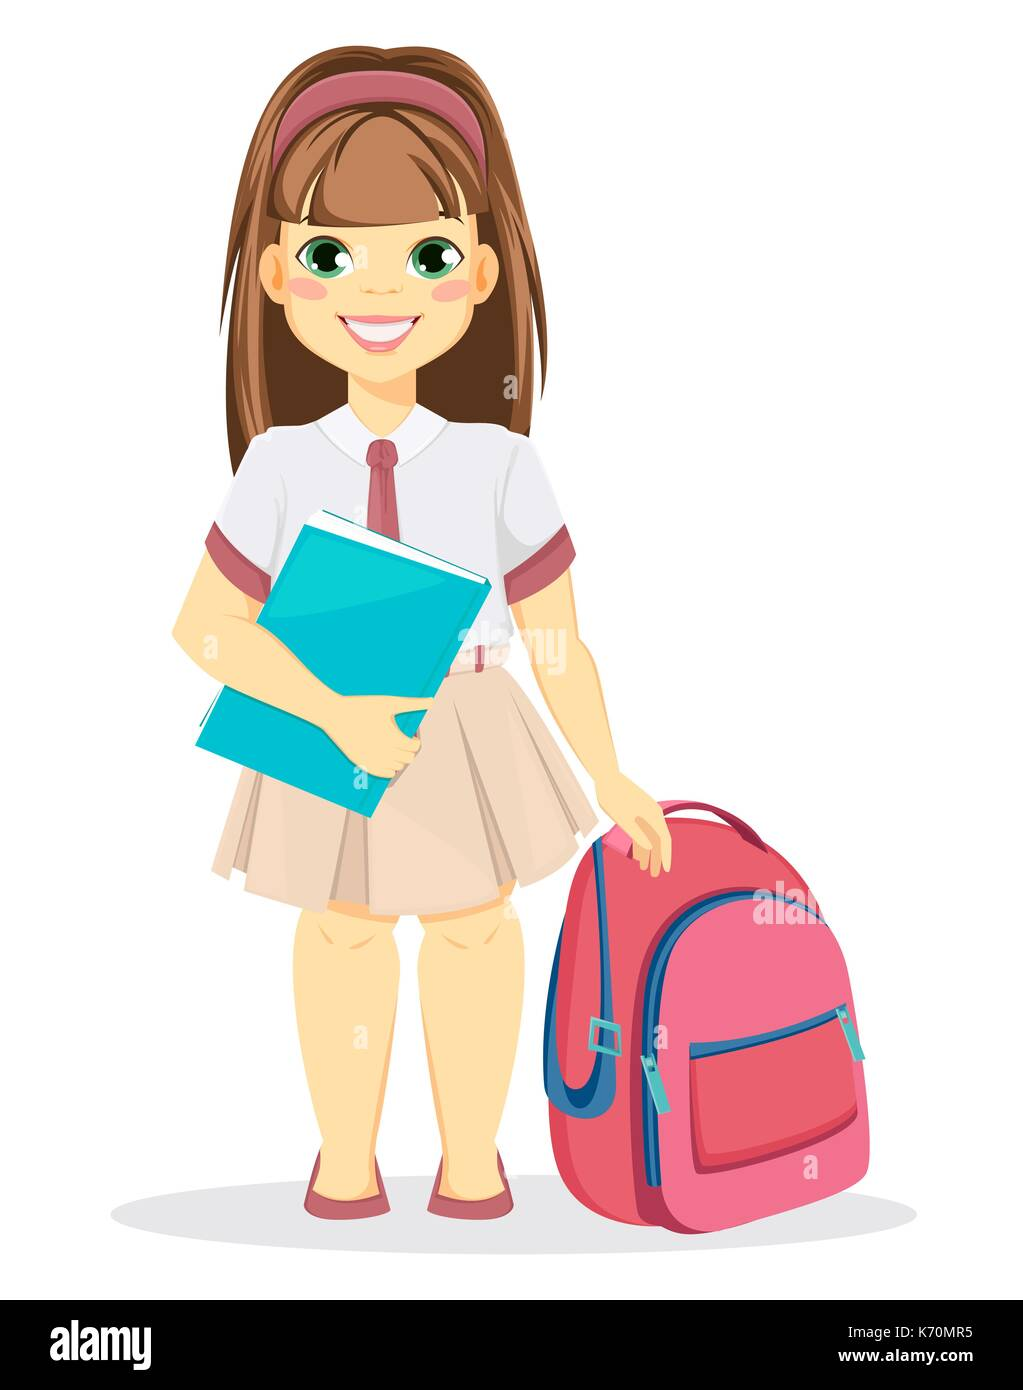 Schoolgirl with backpack and textbook. Coming back to school. Cute smiling  girl. Cartoon character. Vector illustration. 392b02435349f